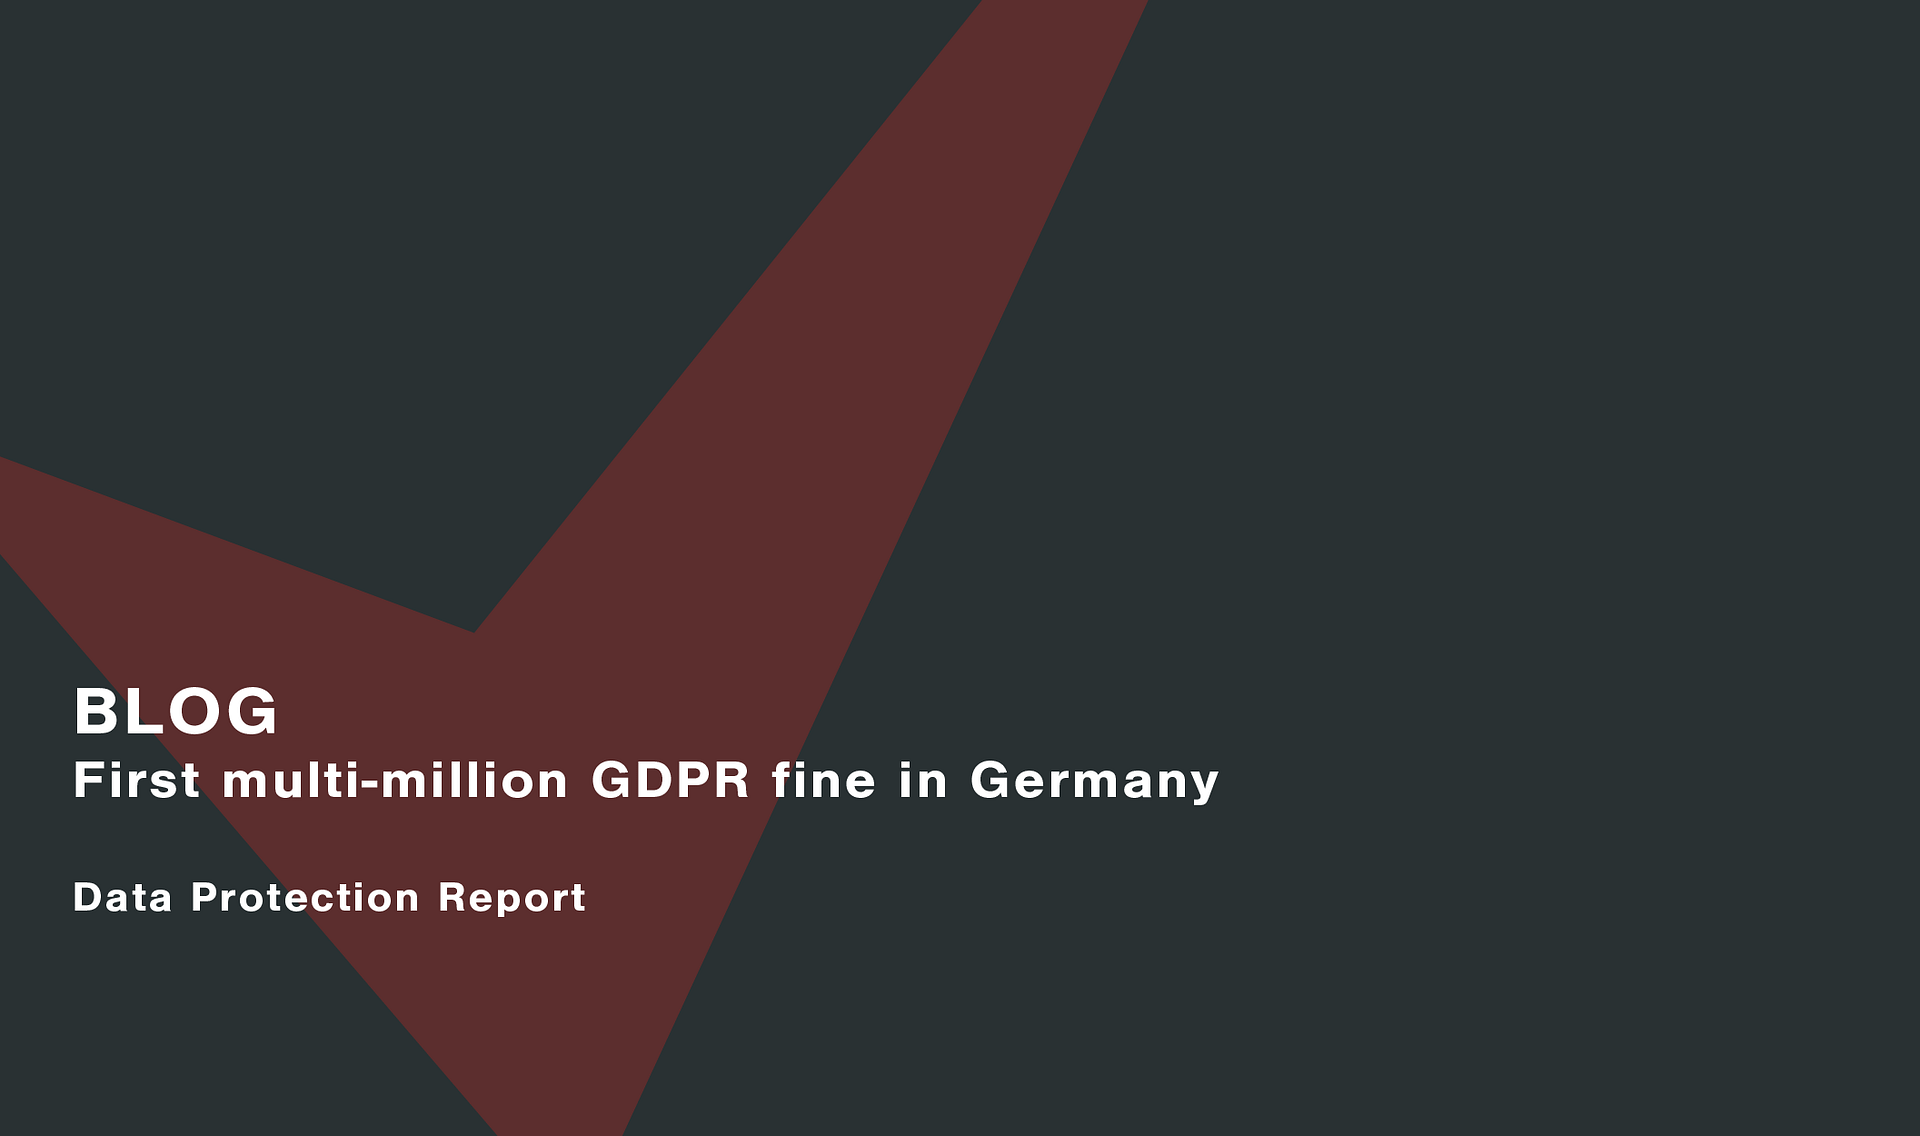 First multi-million GDPR fine in Germany Cassie personal information & consent management